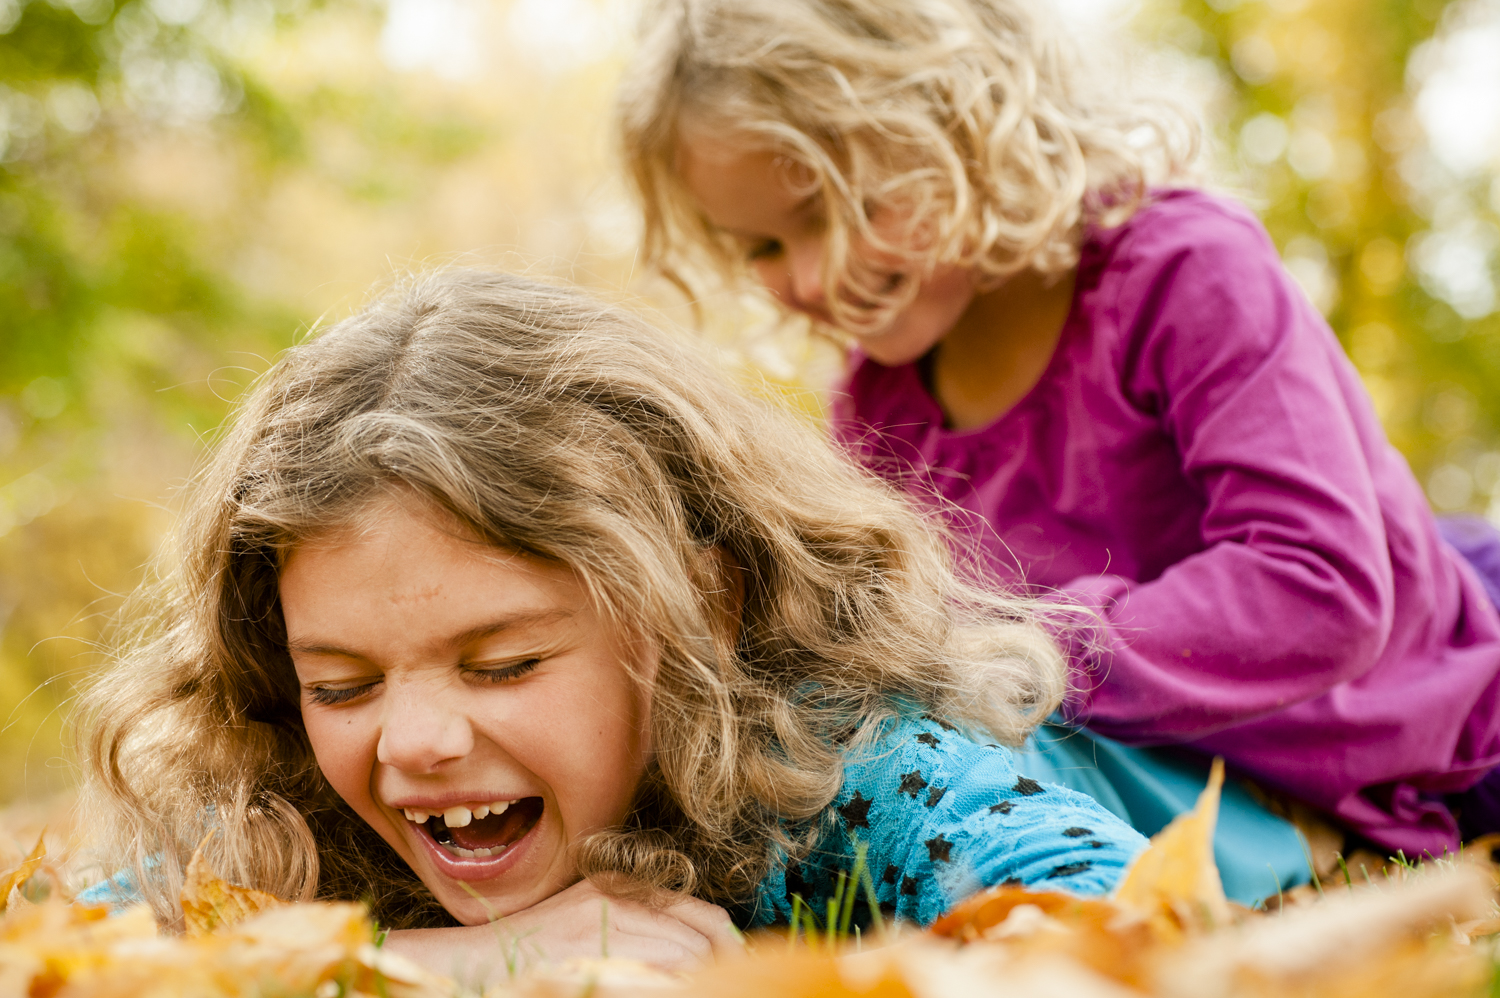 fall_lifestyle_family_leaves_candid_playing-019.jpg